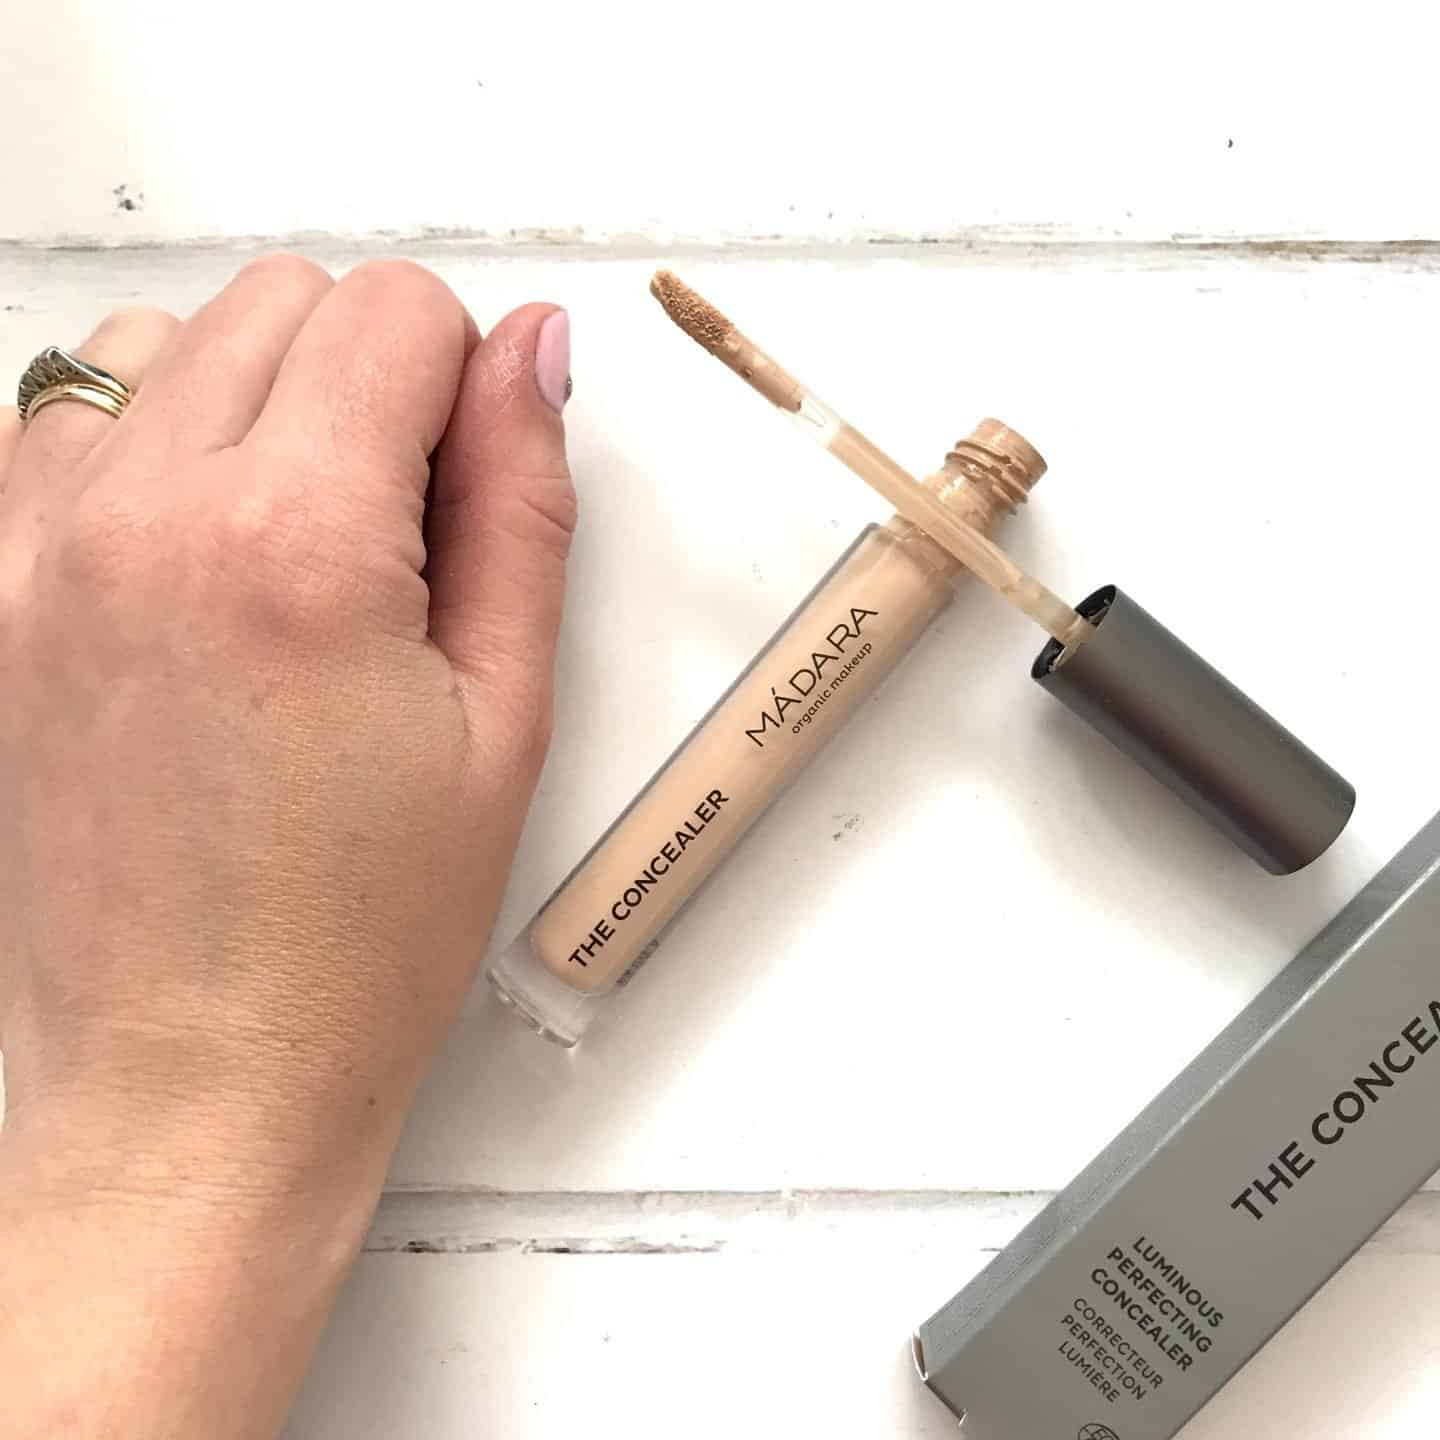 Madara The Concealer Luminous Perfecting Concealer swatch on hand blended in